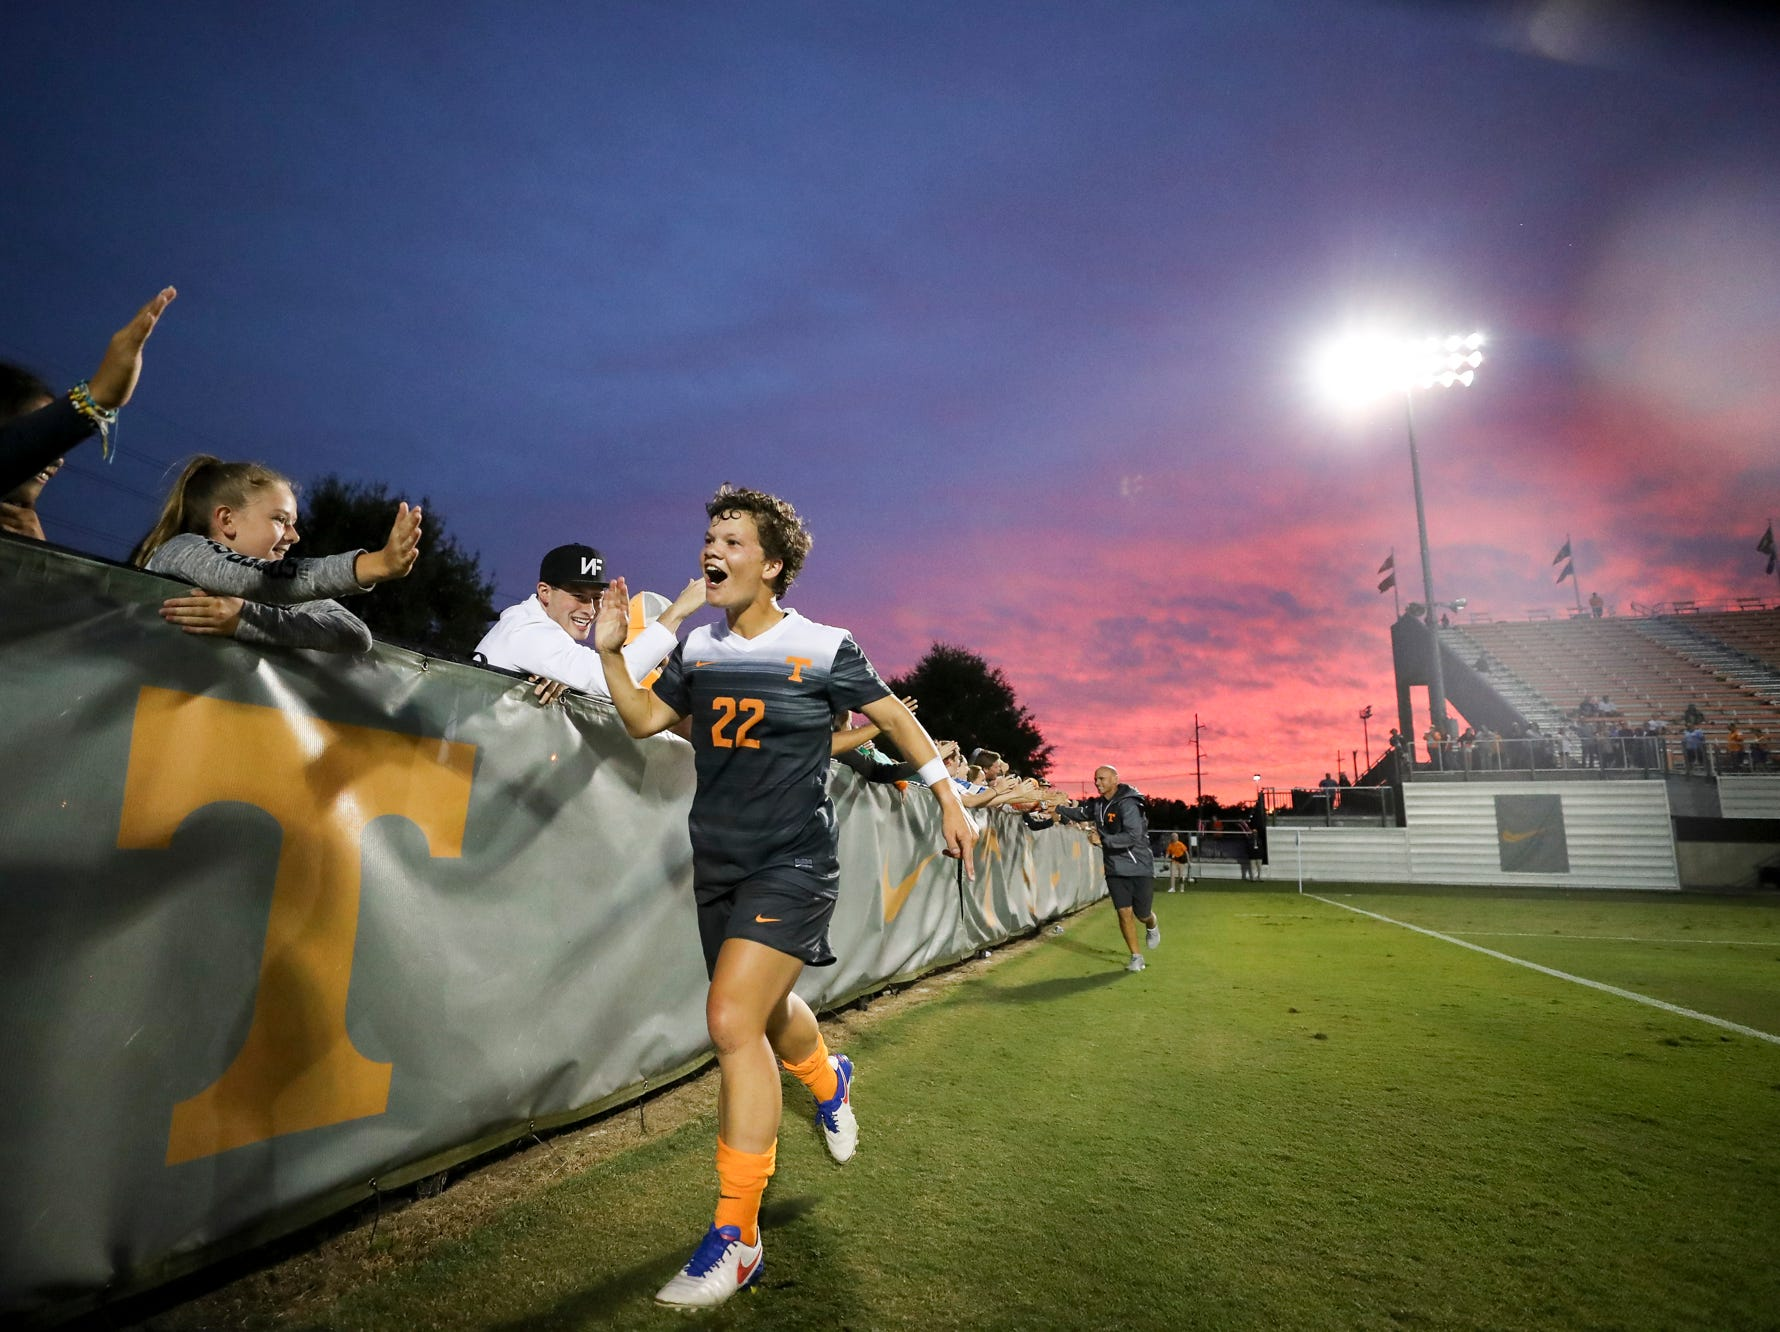 KNOXVILLE, TN - SEPTEMBER 10, 2017 - Tennessee midfielder Katie Cousins greets fans during a game against Louisville on Sept. 10, 2017 at Regal Soccer Stadium in Knoxville.